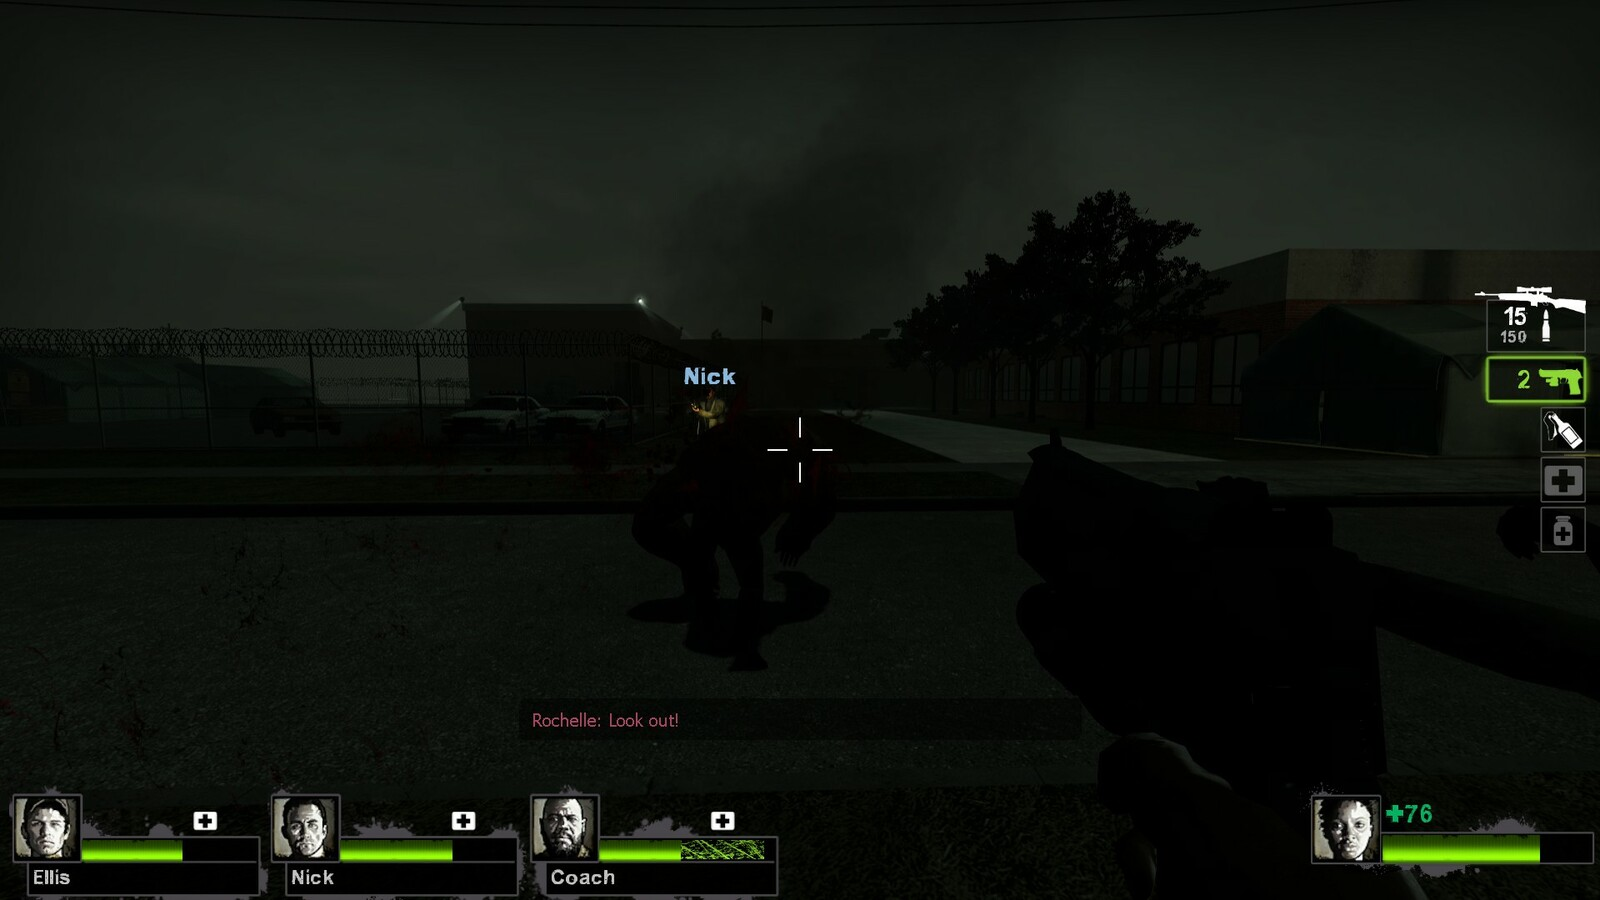 Before players can escape they must fight off one final encounter. This tank is scripted and will always spawn, in L4D2 a director AI entity controls when special zombies can spawn, but here it's set to always be the final encounter.